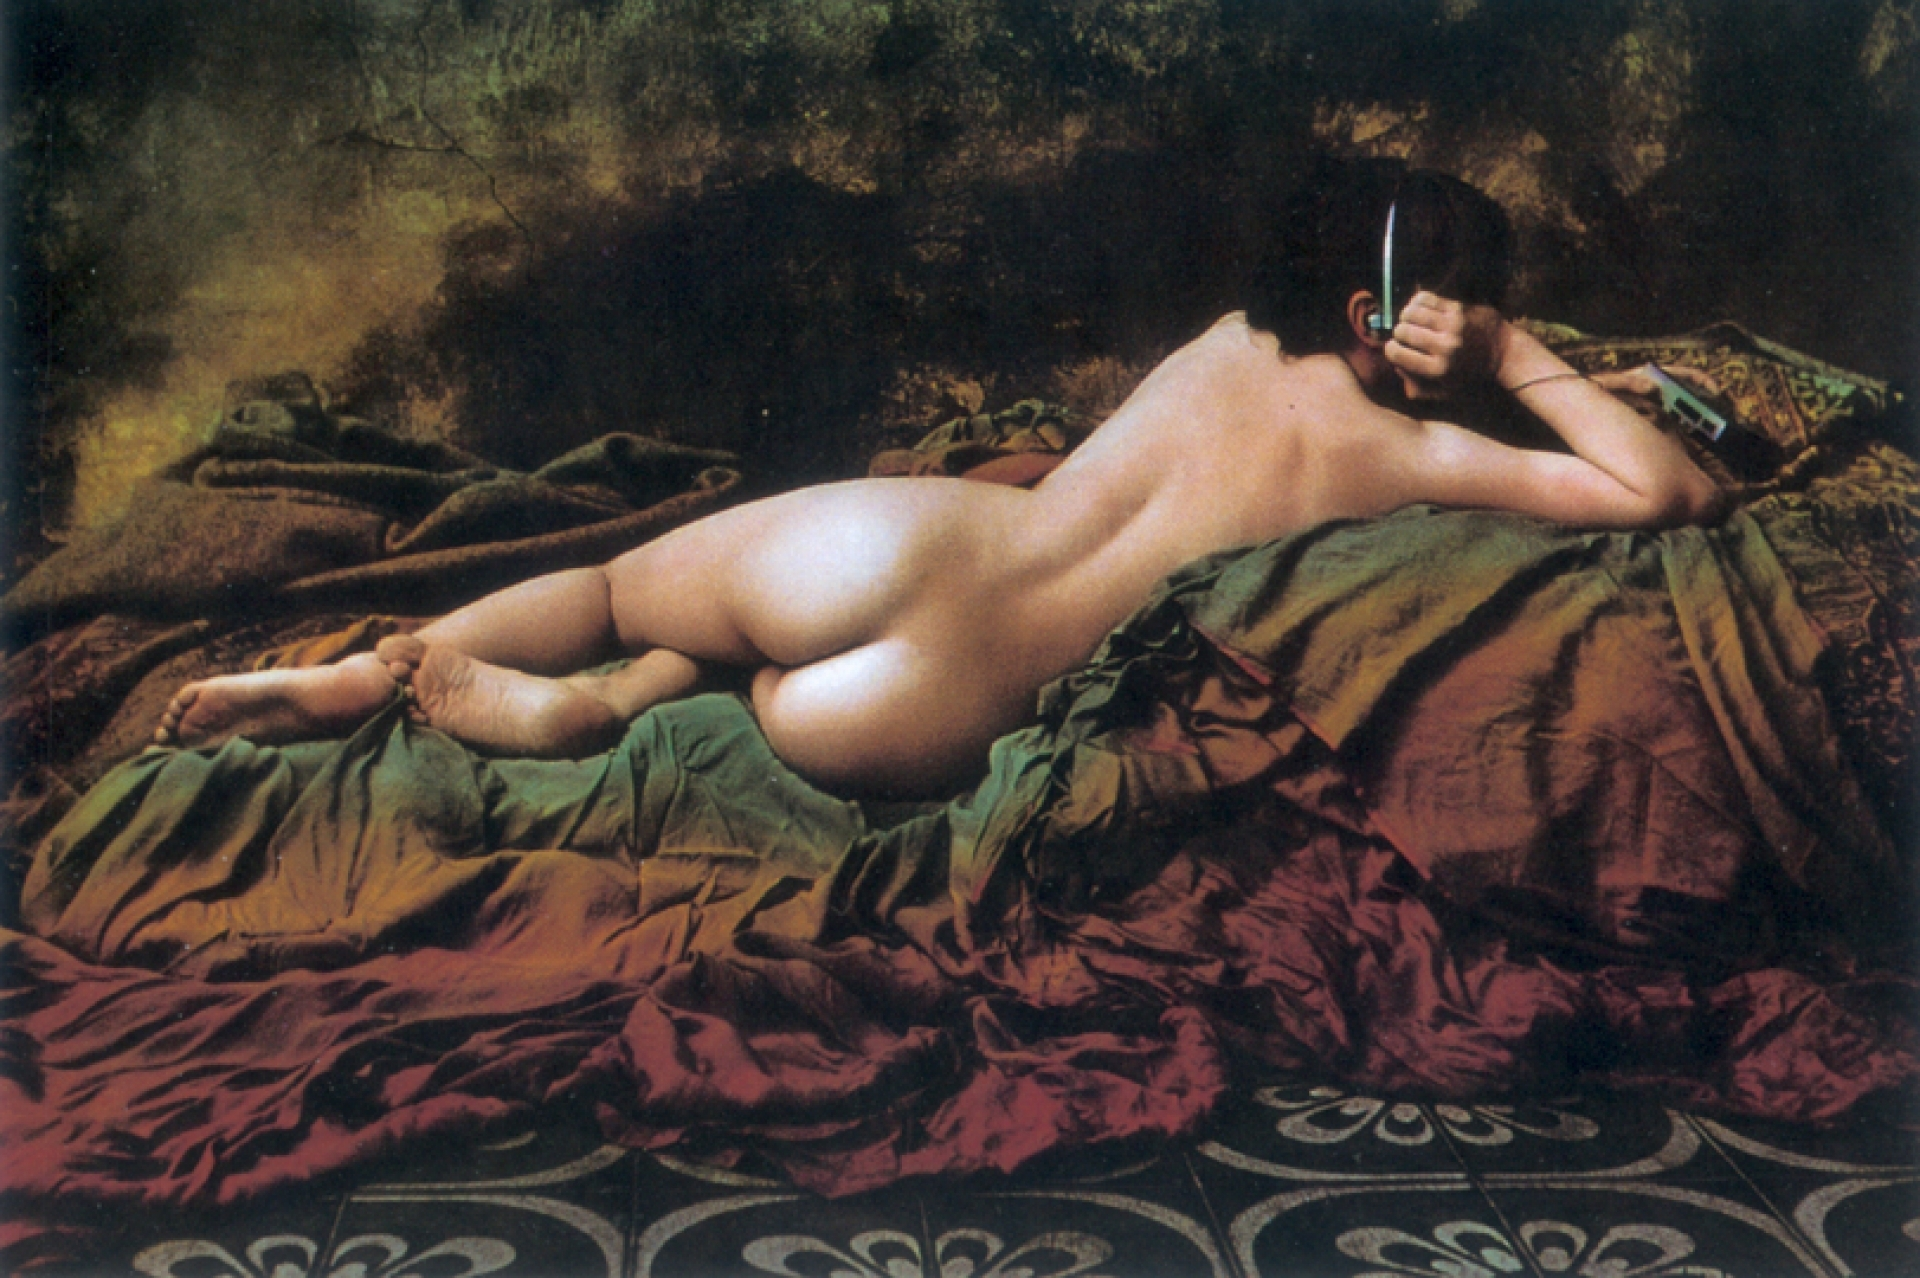 Jan Saudek exhibition opens in Szeged